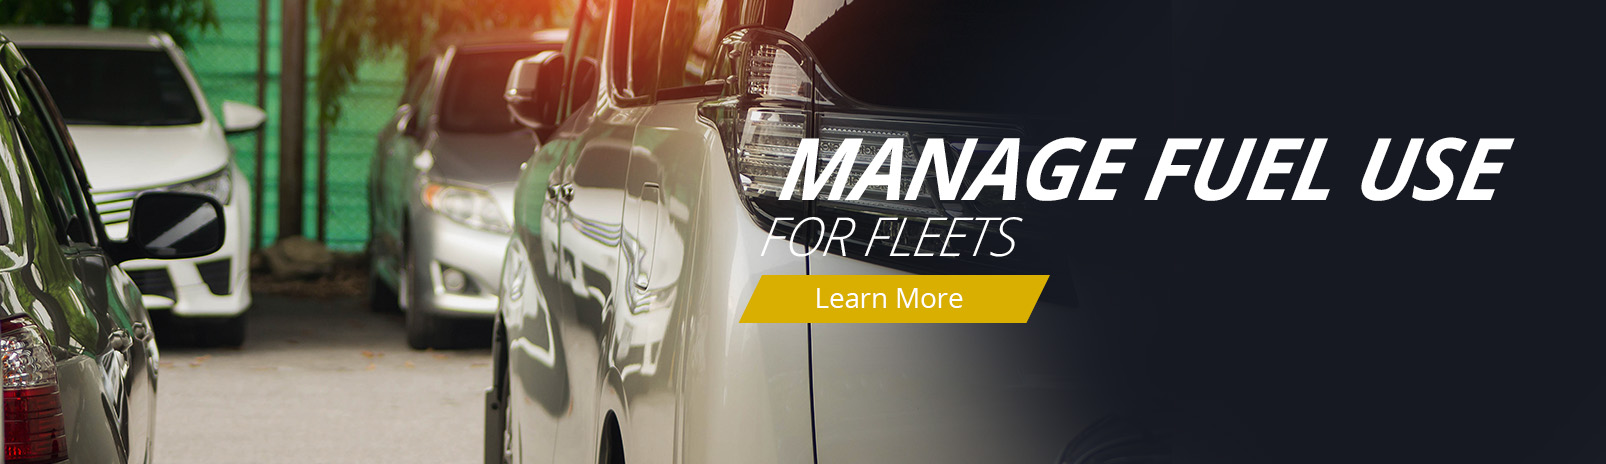 Manage Fuel Use for Fleets